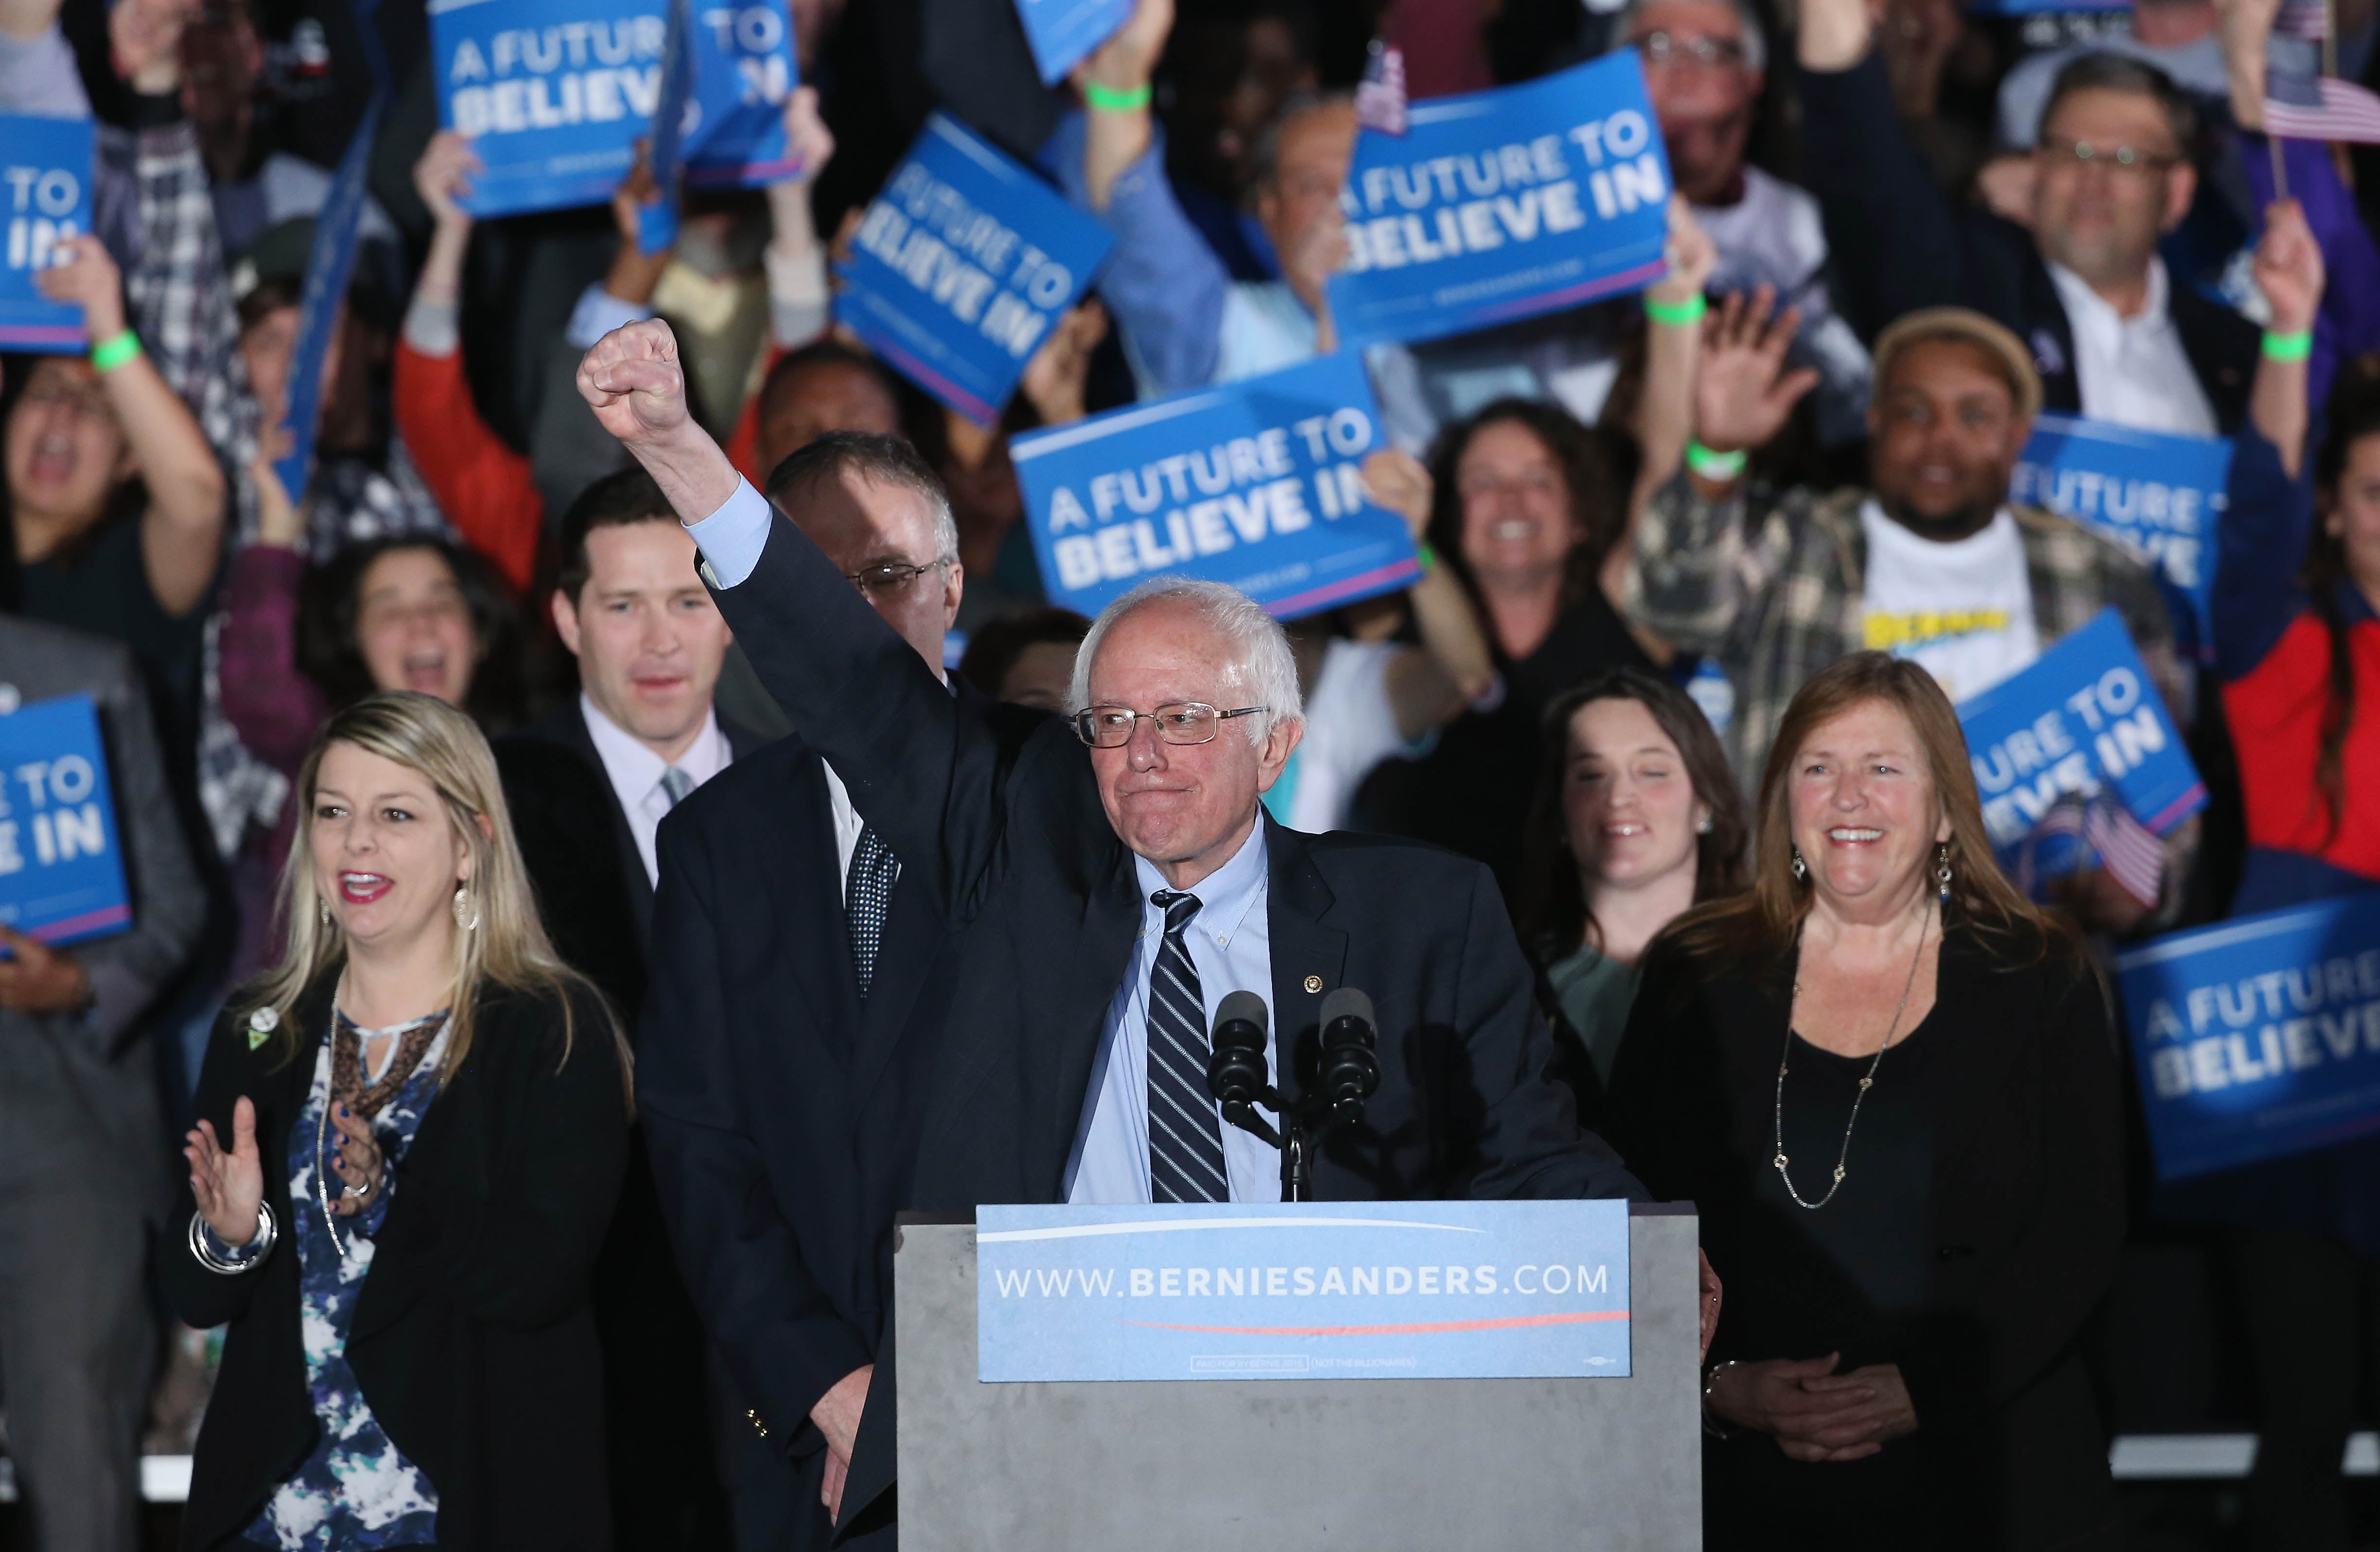 Sanders and his wife Jane O'Meara greet supporters after winning the New Hampshire Democratic Primary.